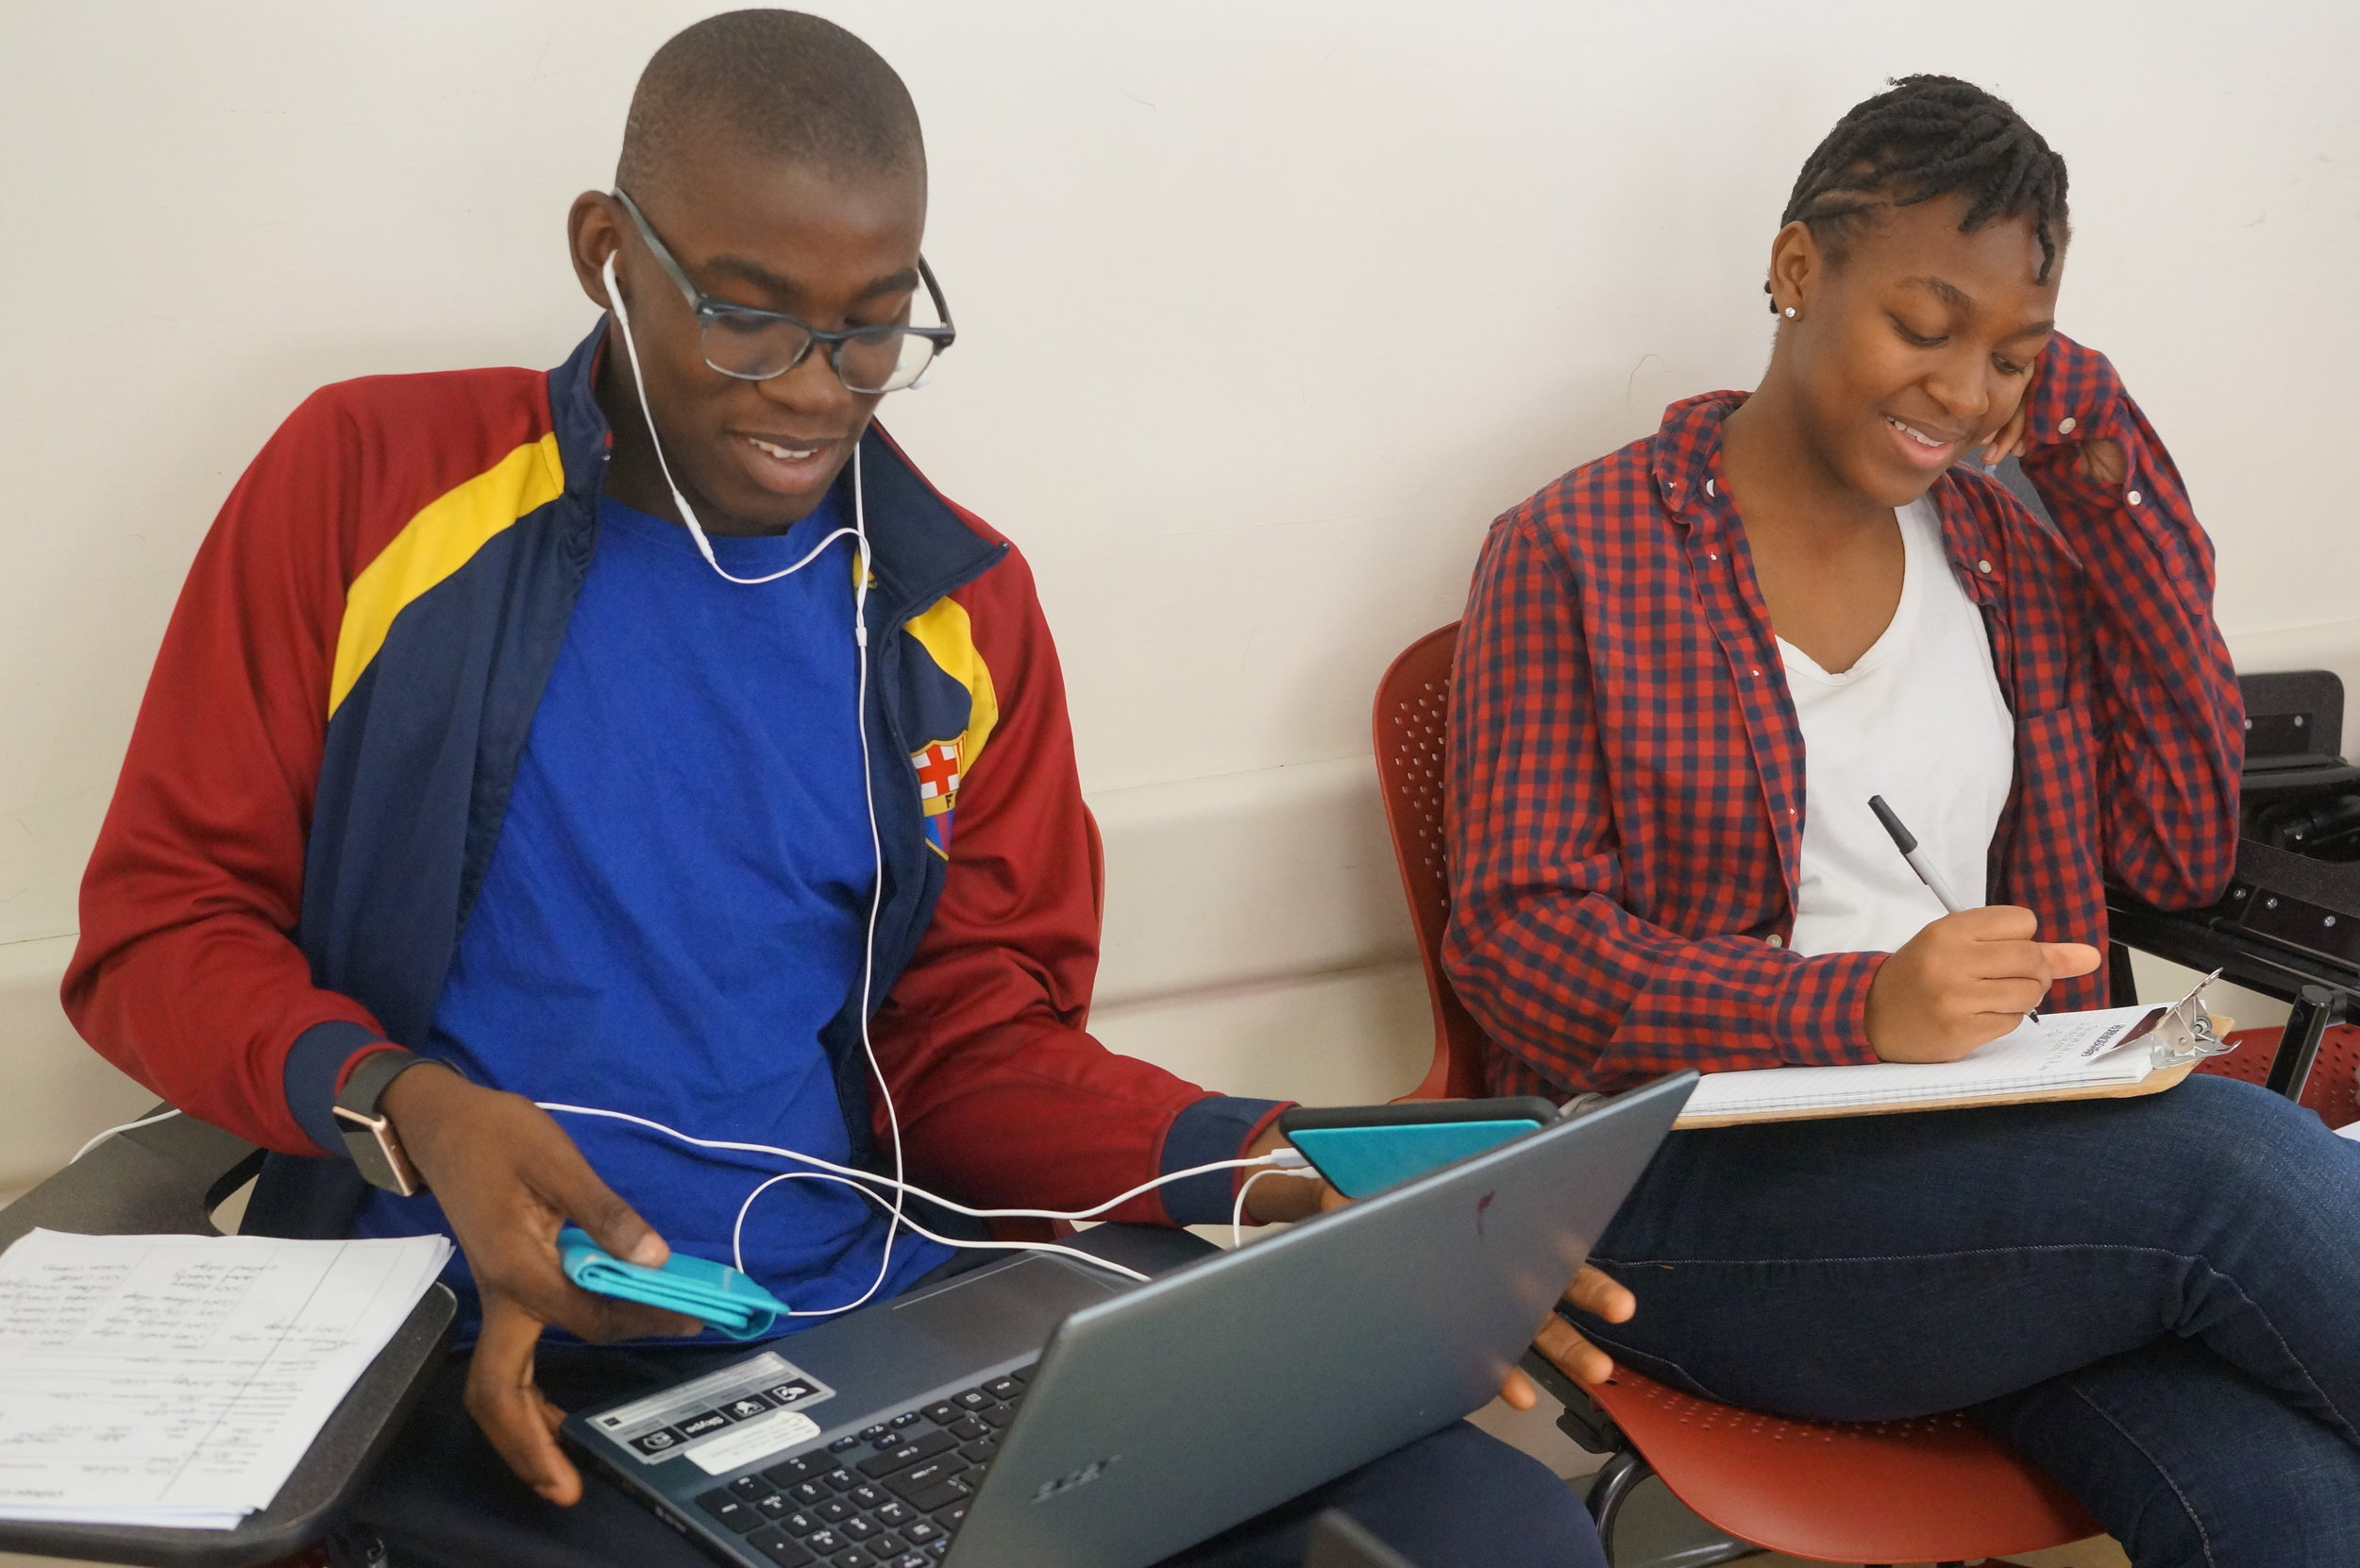 John starts early! Here he is at BEAM College Prep Week 2016 along with Zereena, also BEAM '12, who attends SUNY Binghamton. They're both working on their essays!